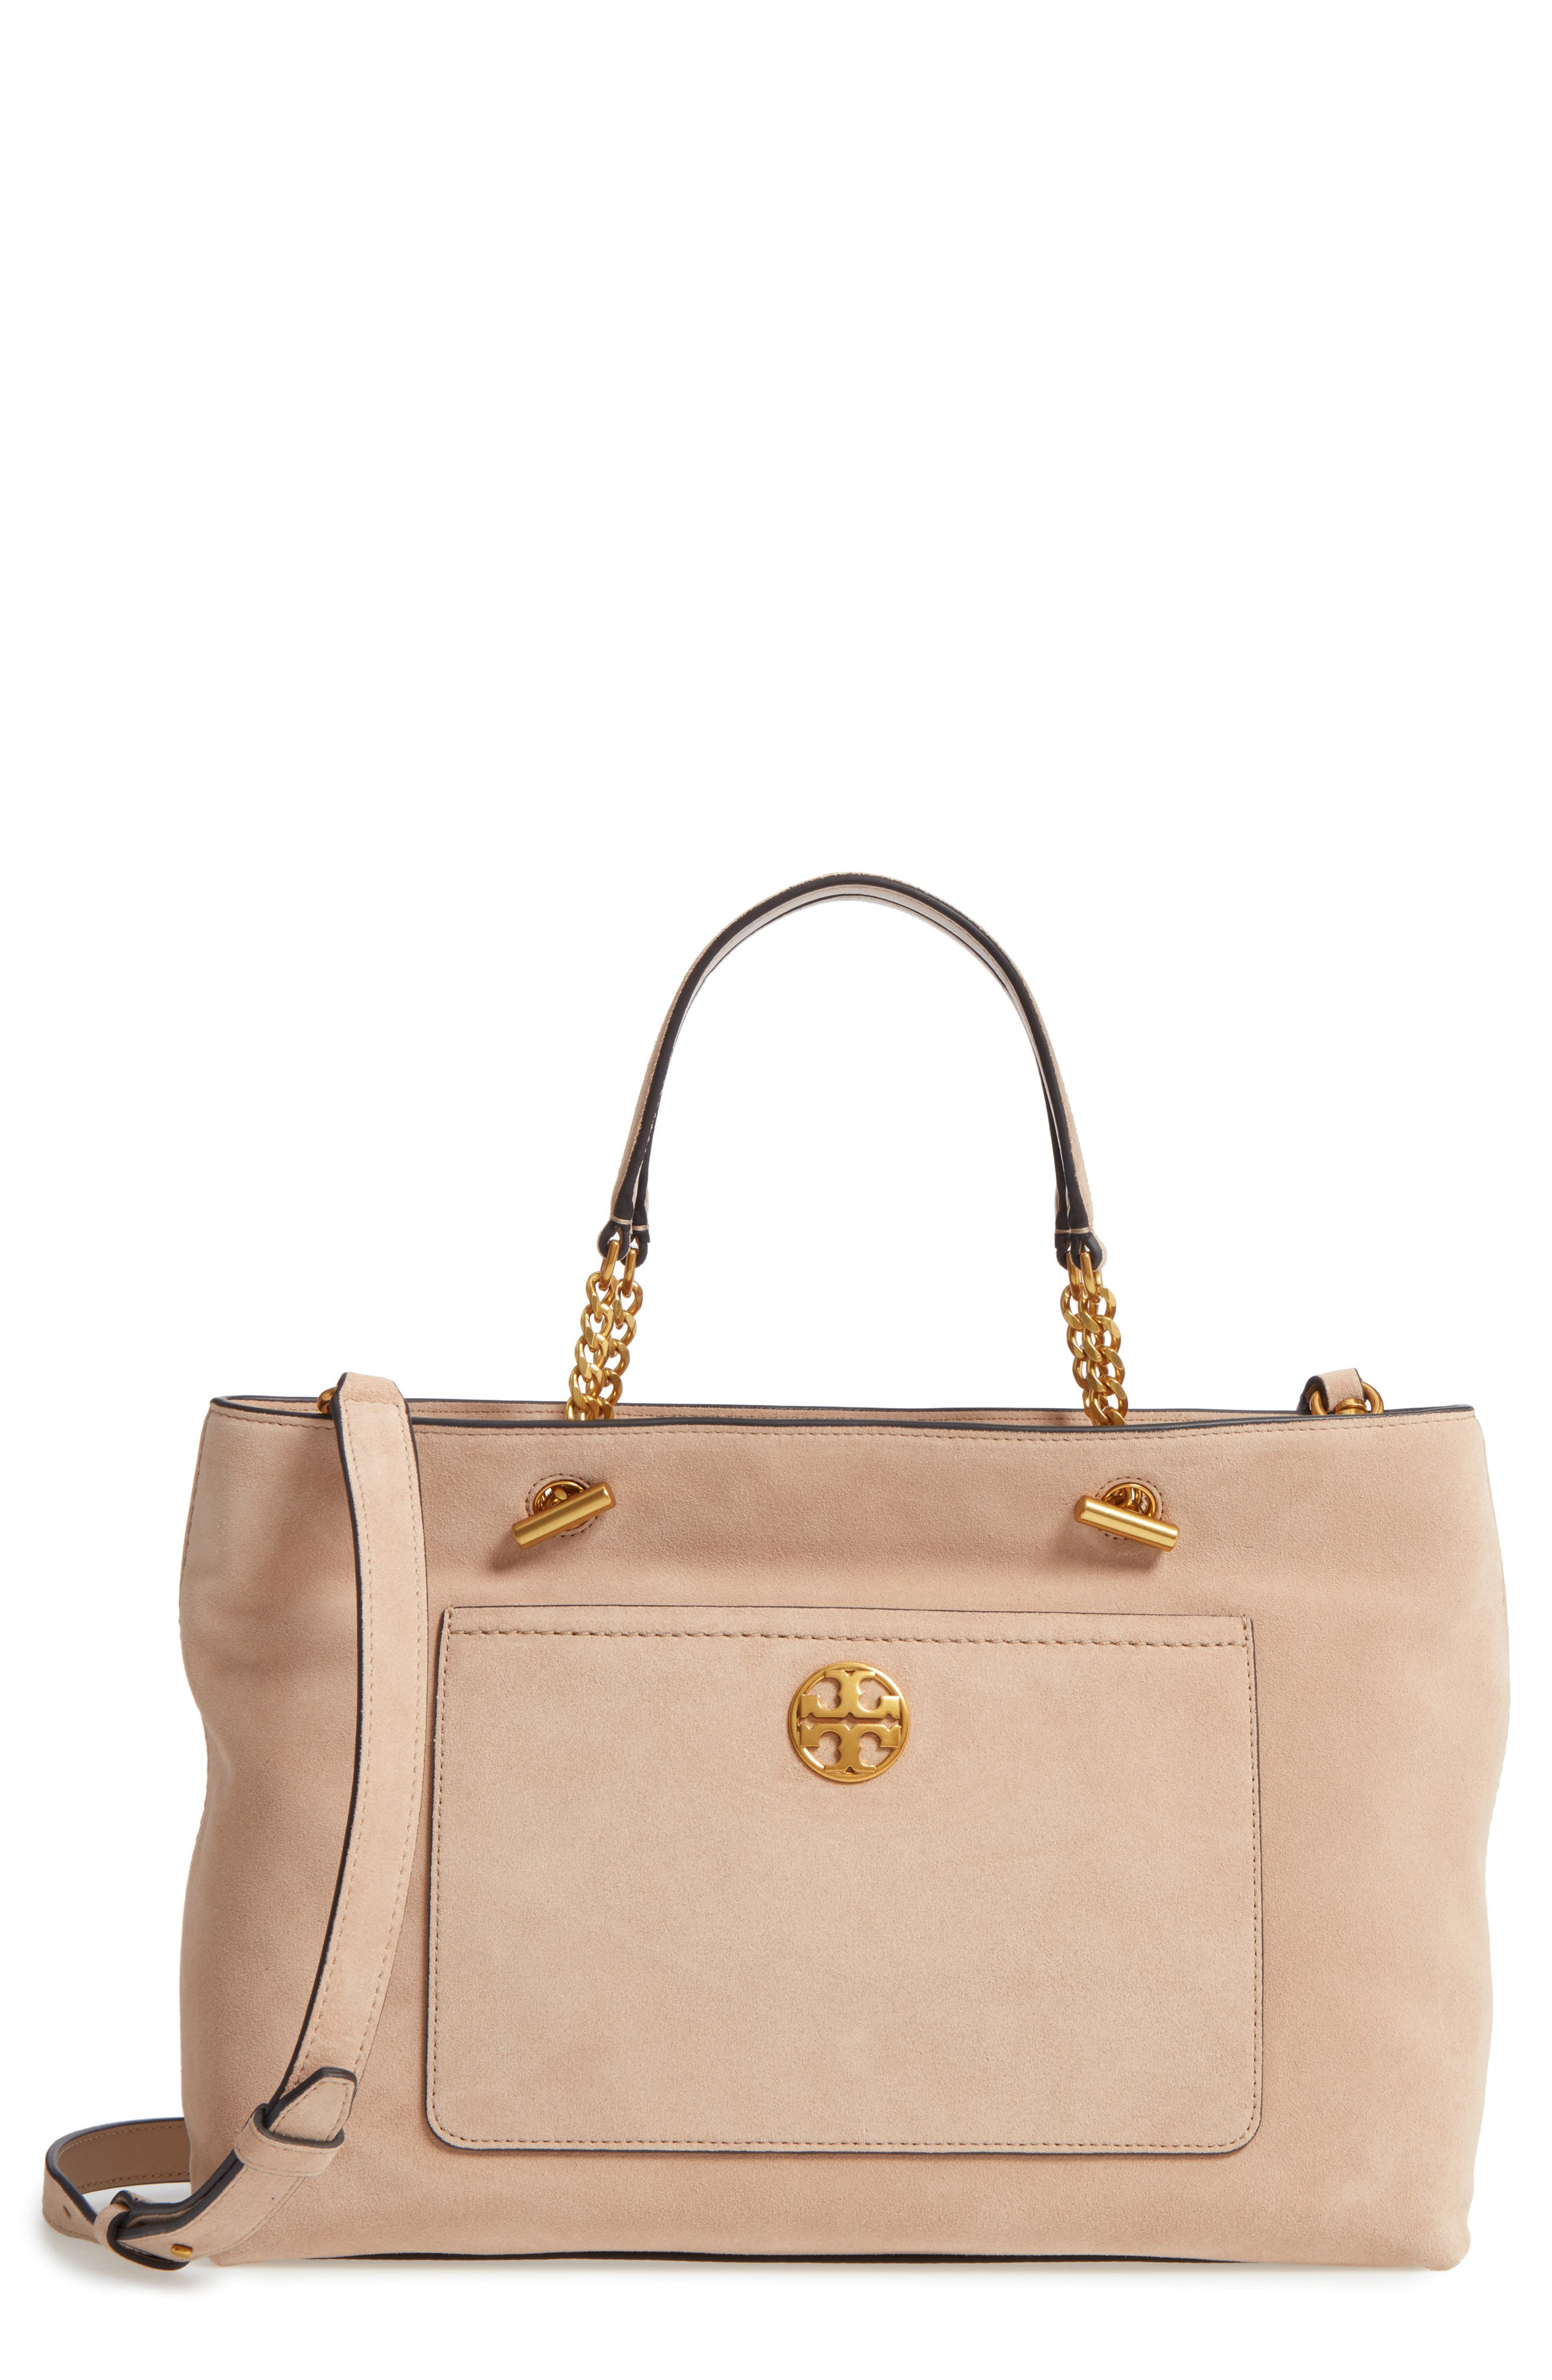 Alternate Image 1 Selected - Tory Burch Chelsea Suede Satchel